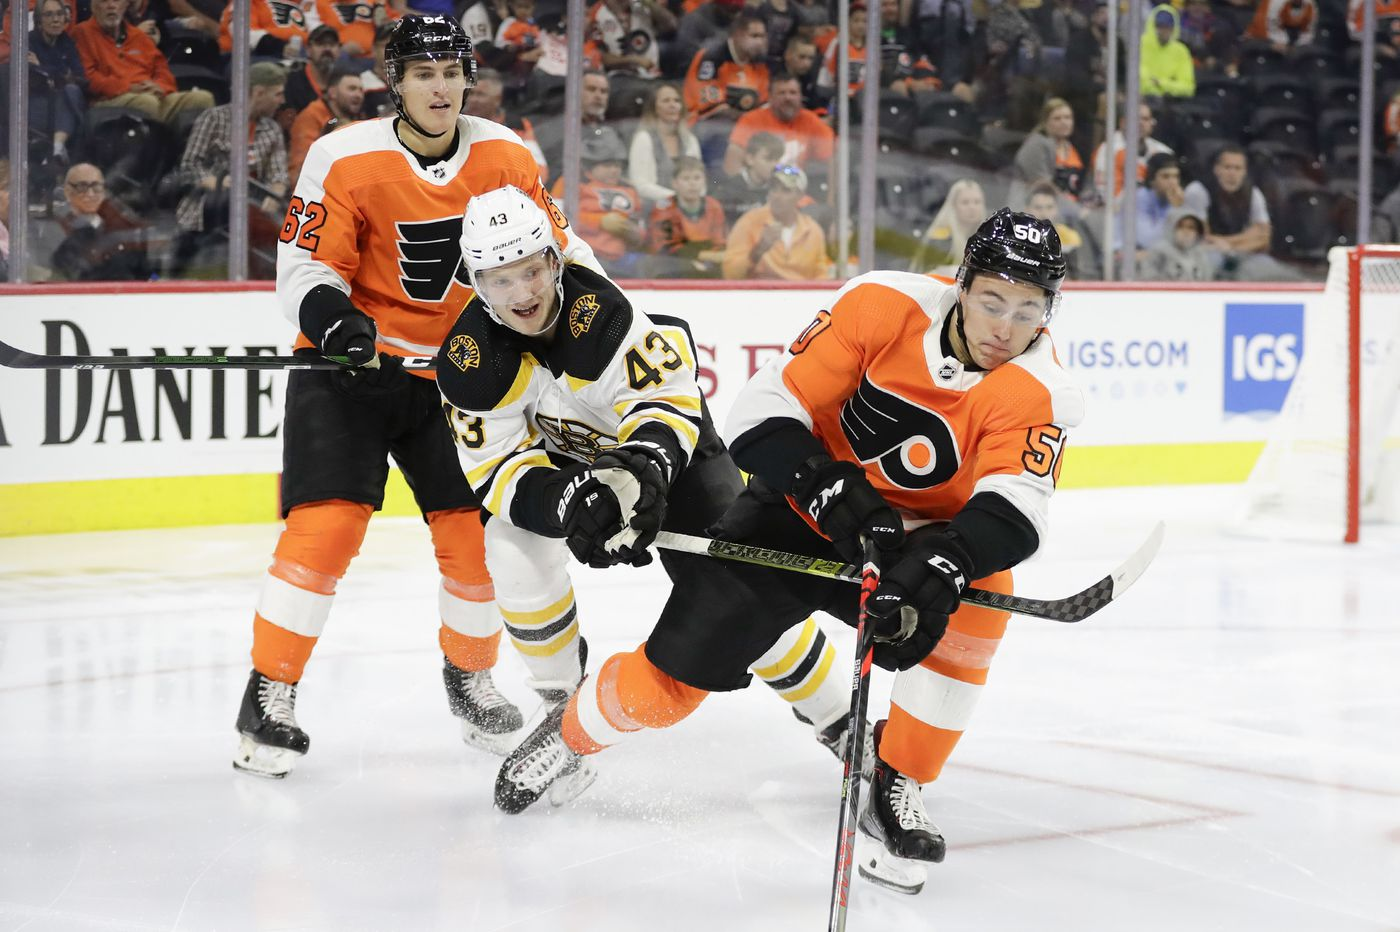 Flyers roster preview: Which players are battling for roles?